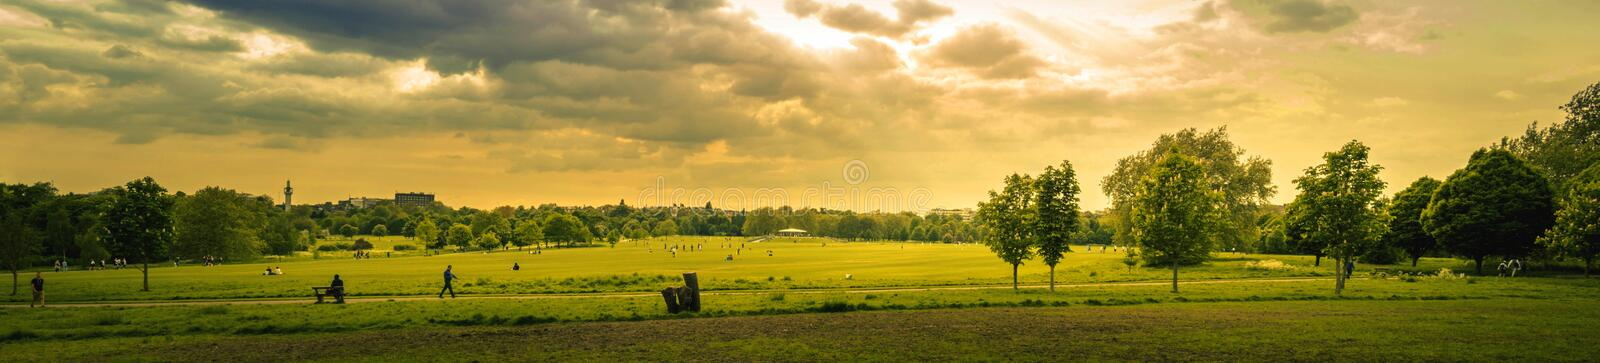 Green Grass Field during Sunset royalty free stock photos